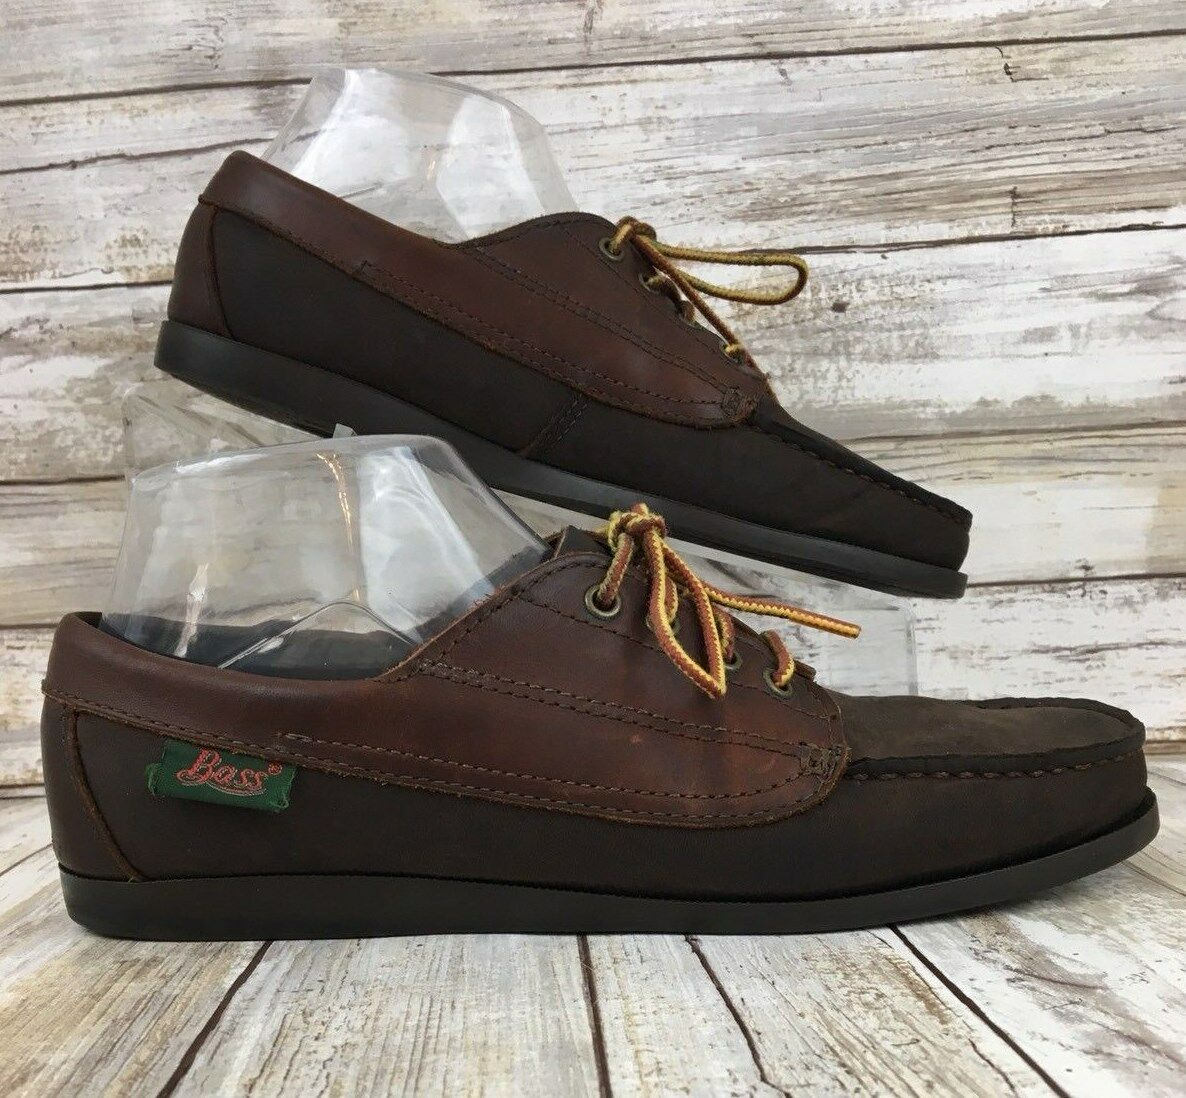 Vtg Bass Dock Boat shoes Womens Size 8.5M Brown Oiled Leather Moc Toe Lace Up USA